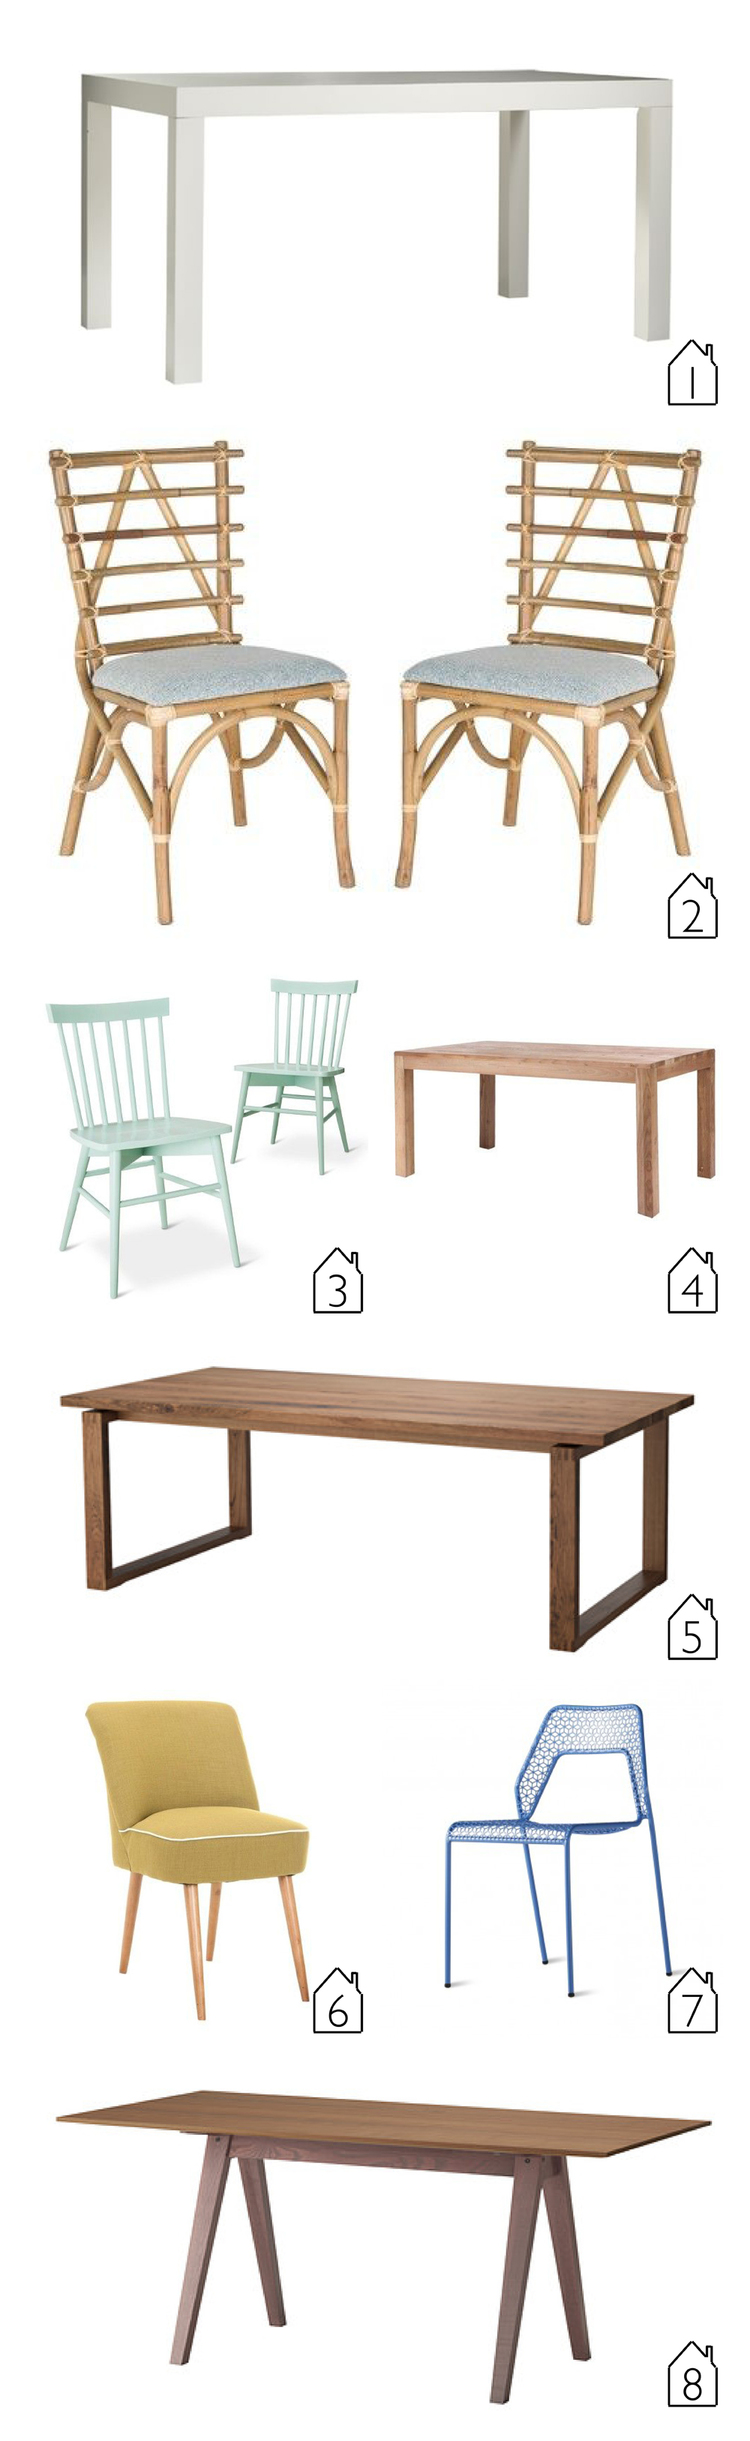 sourcing a dining room table chairs u2014 the place home